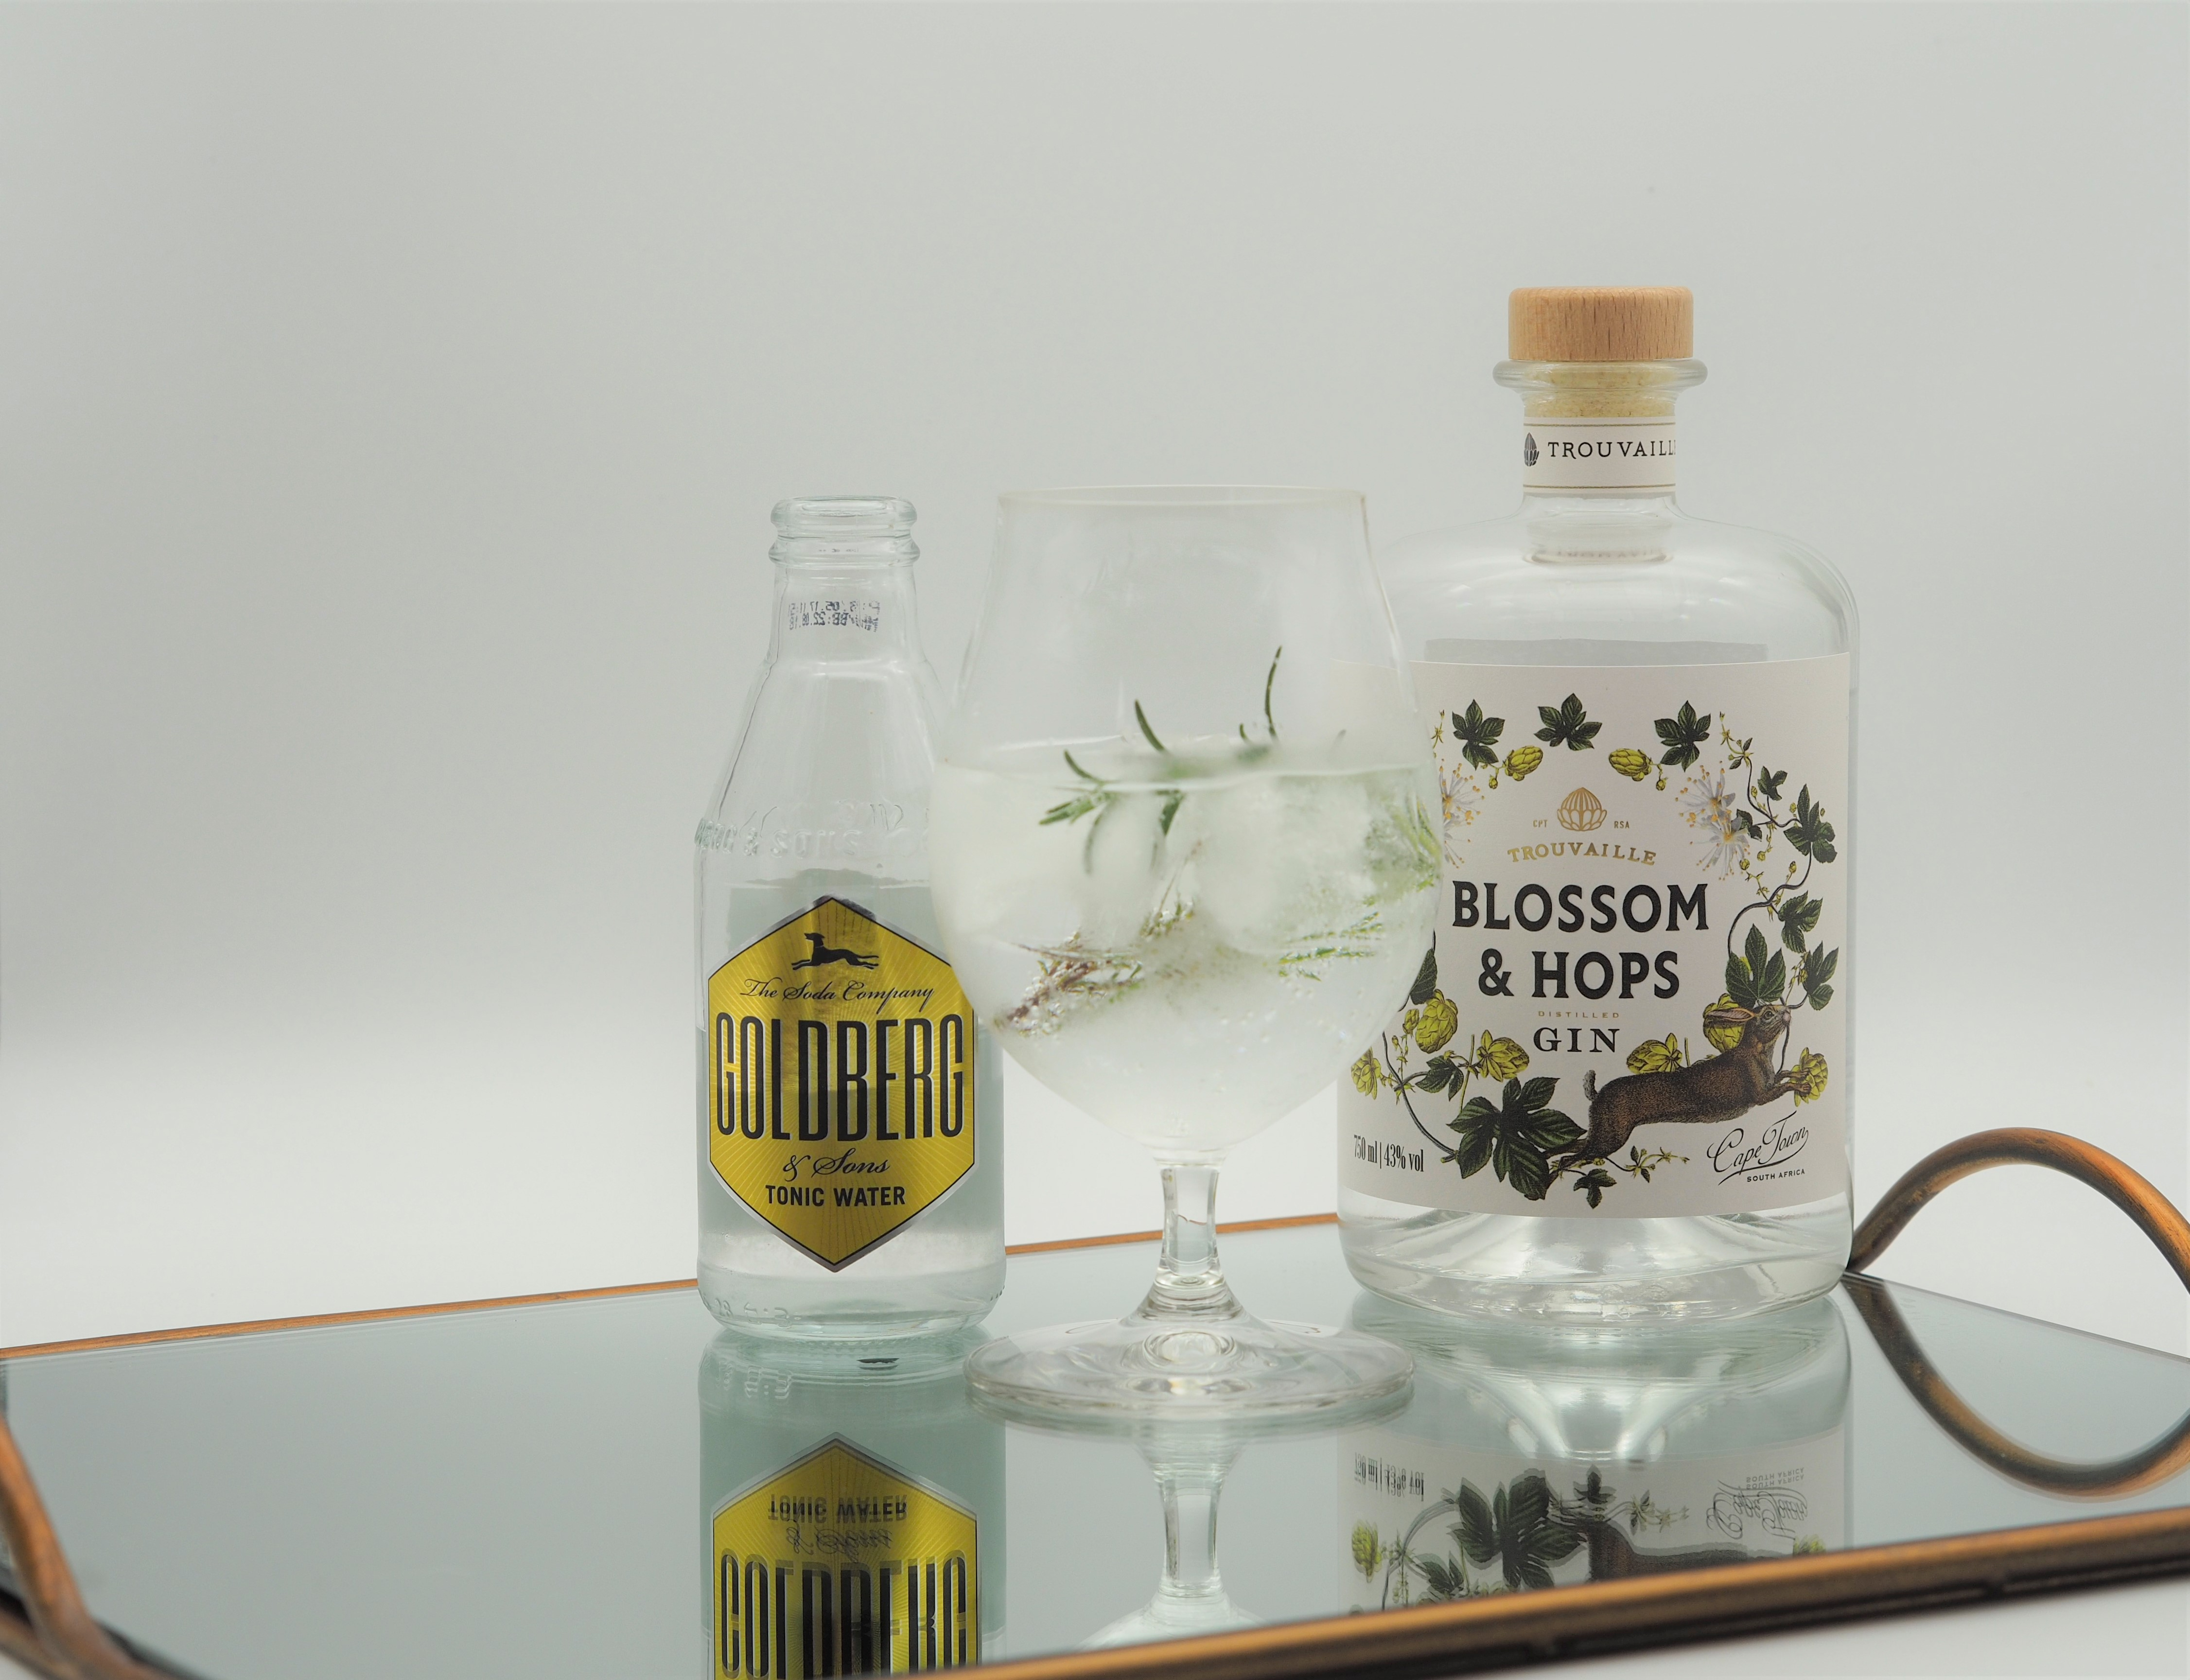 Blossom and Hops, Rosemary and Goldberg and Sons